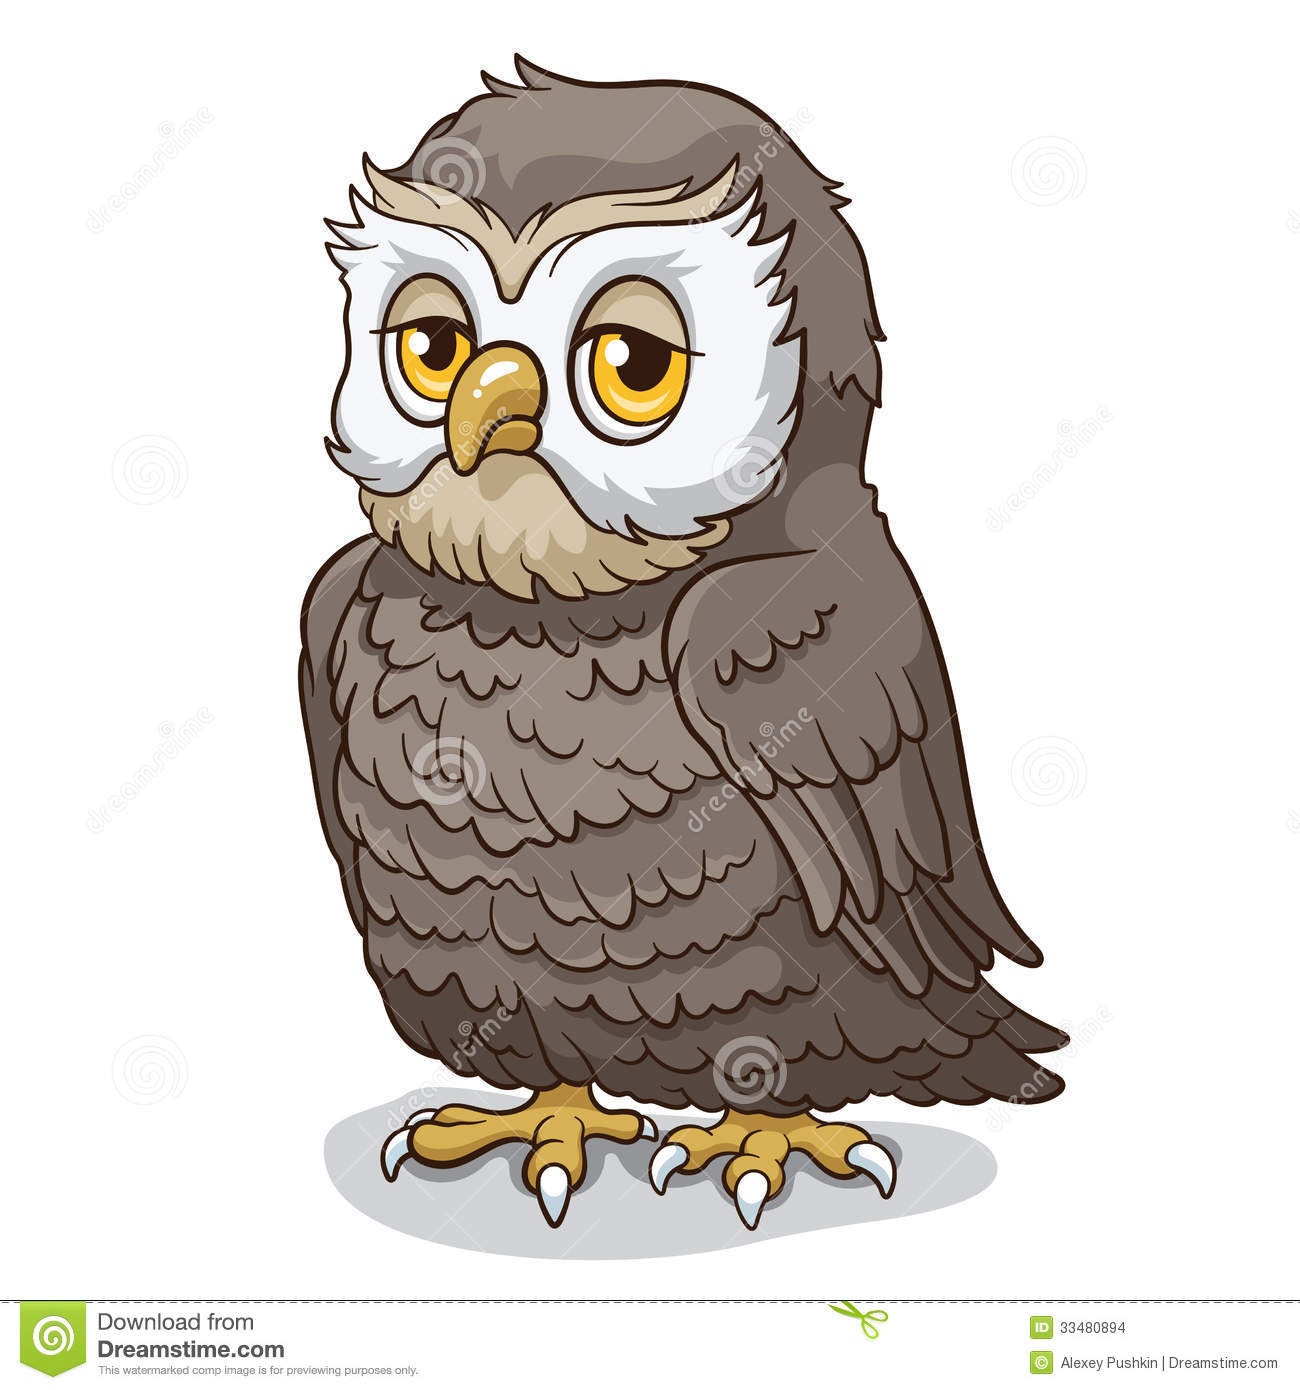 Wise Owl, cartoon vector illustration.